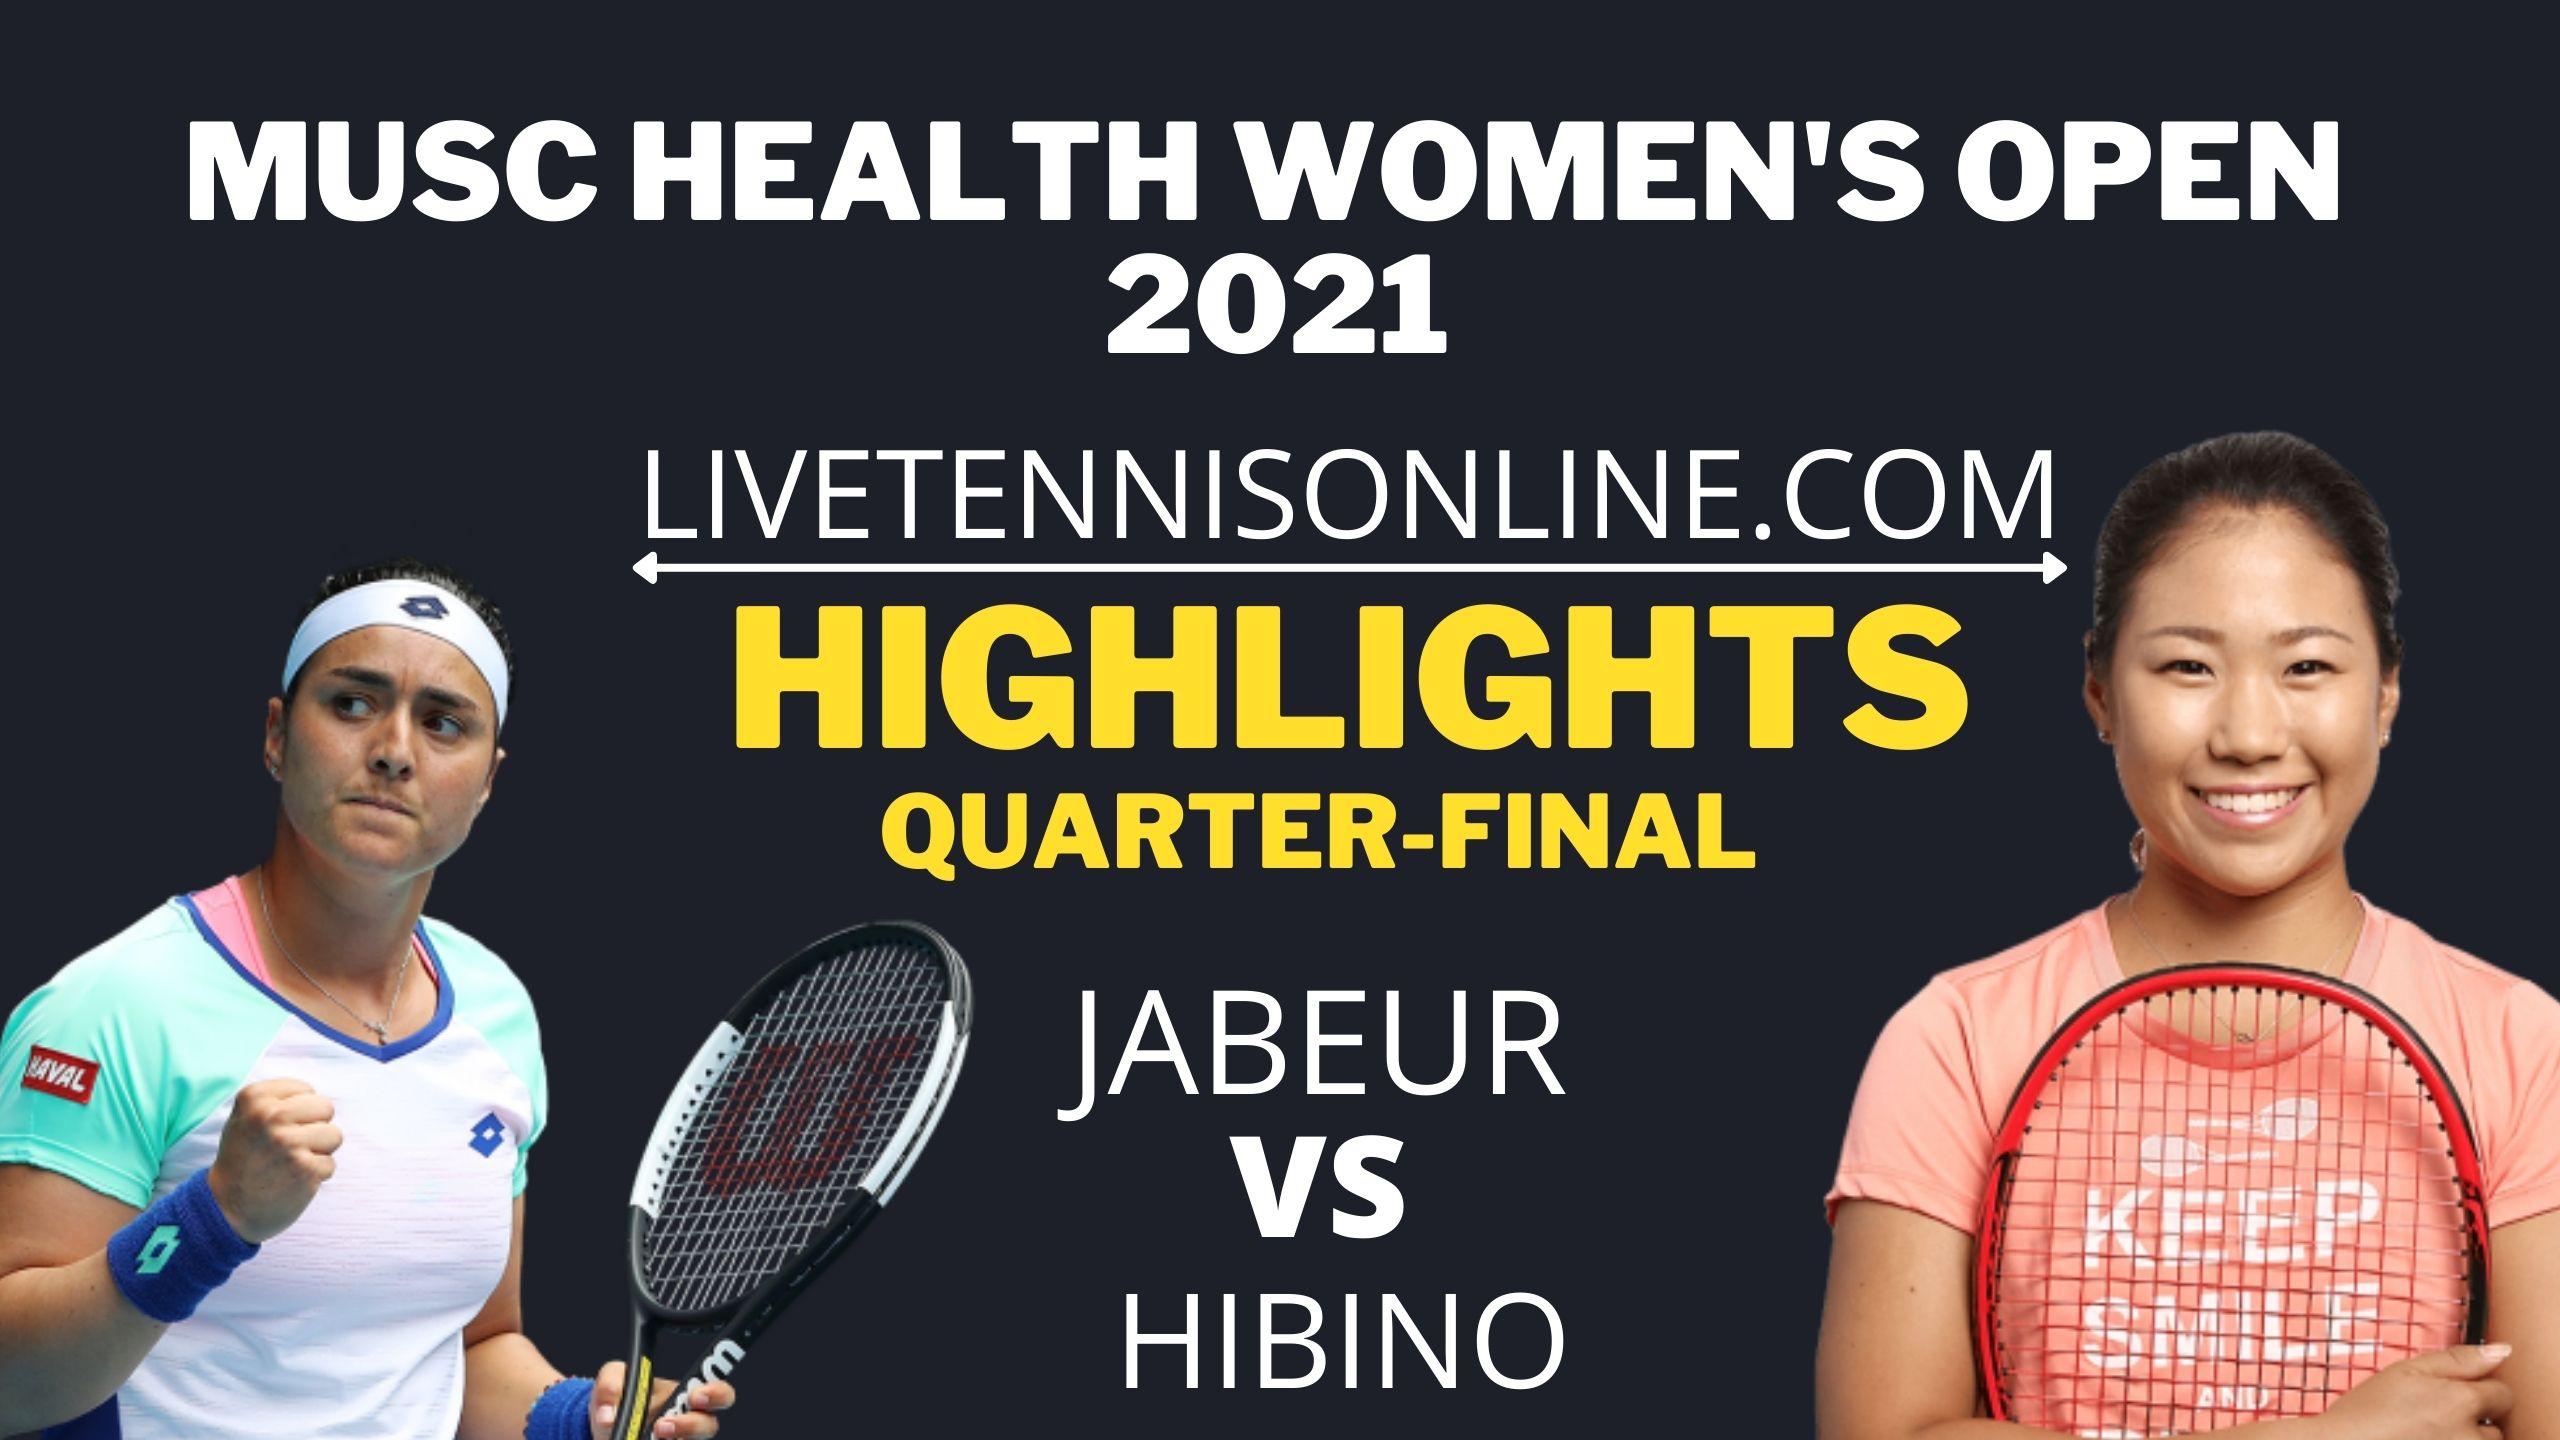 Jabeur Vs Hibino Quarter Final Highlights 2021